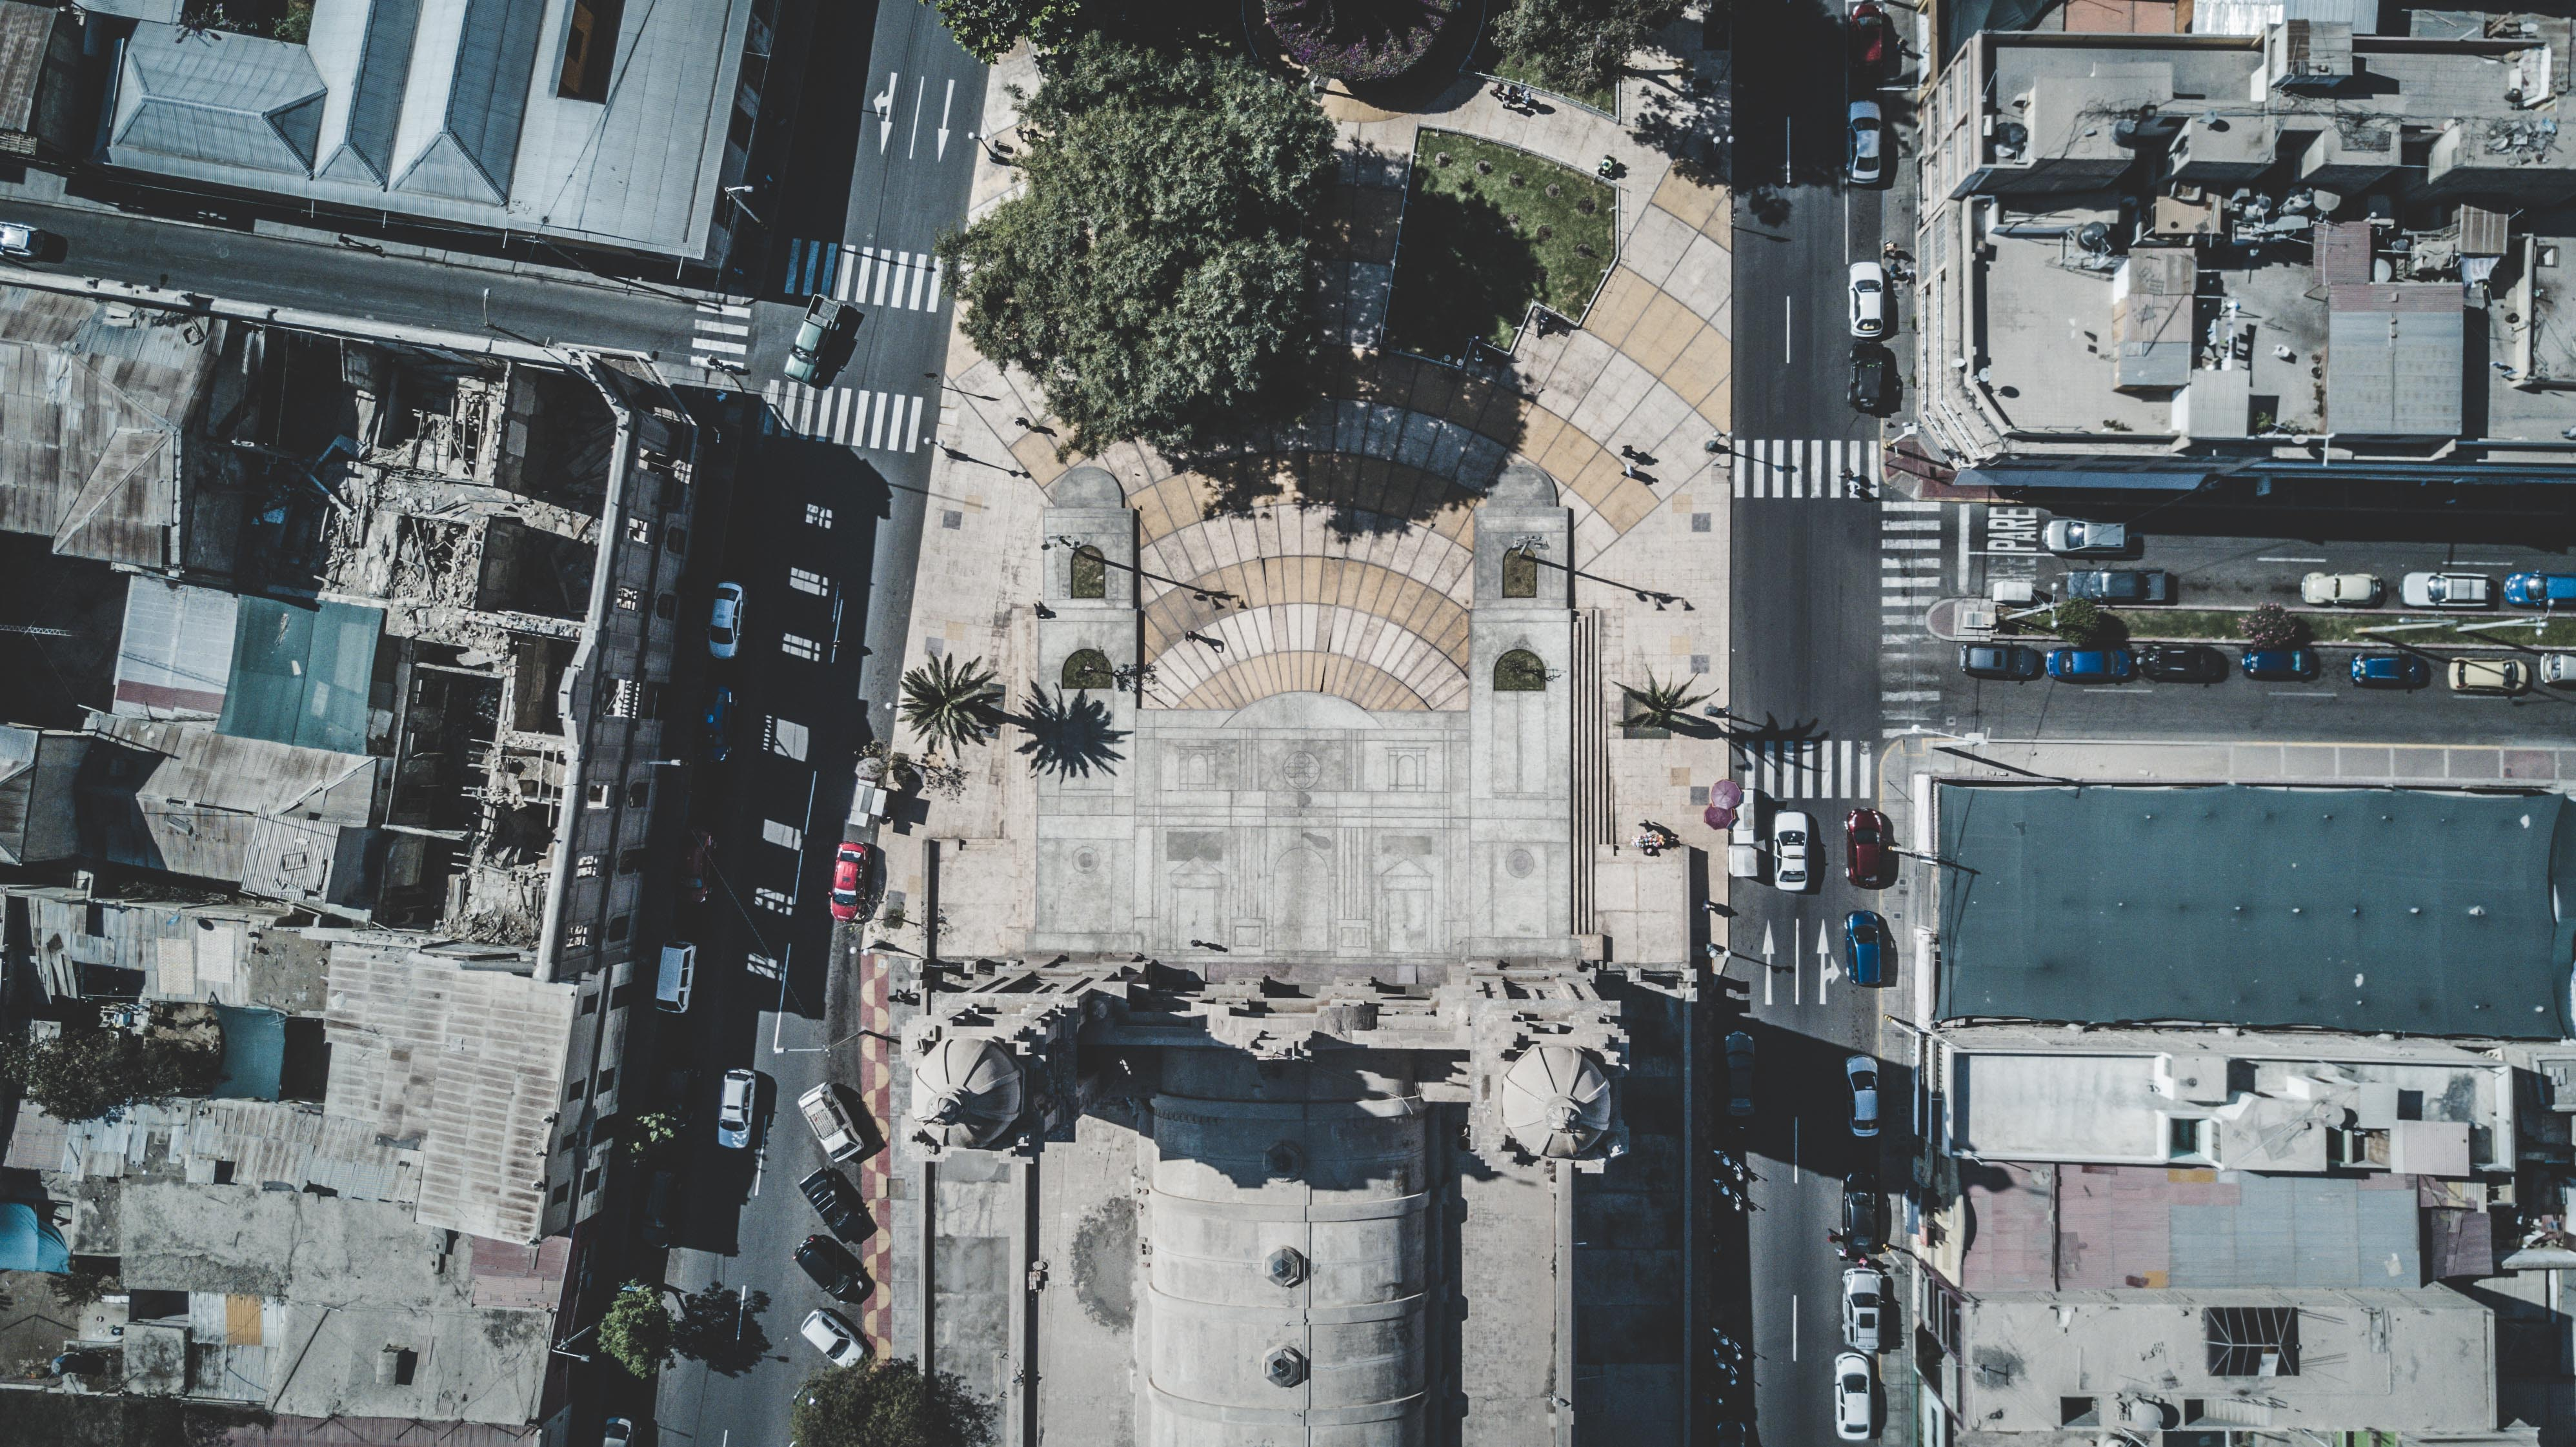 A drone shot of a cathedral and an urban neighborhood in Tacna, Peru